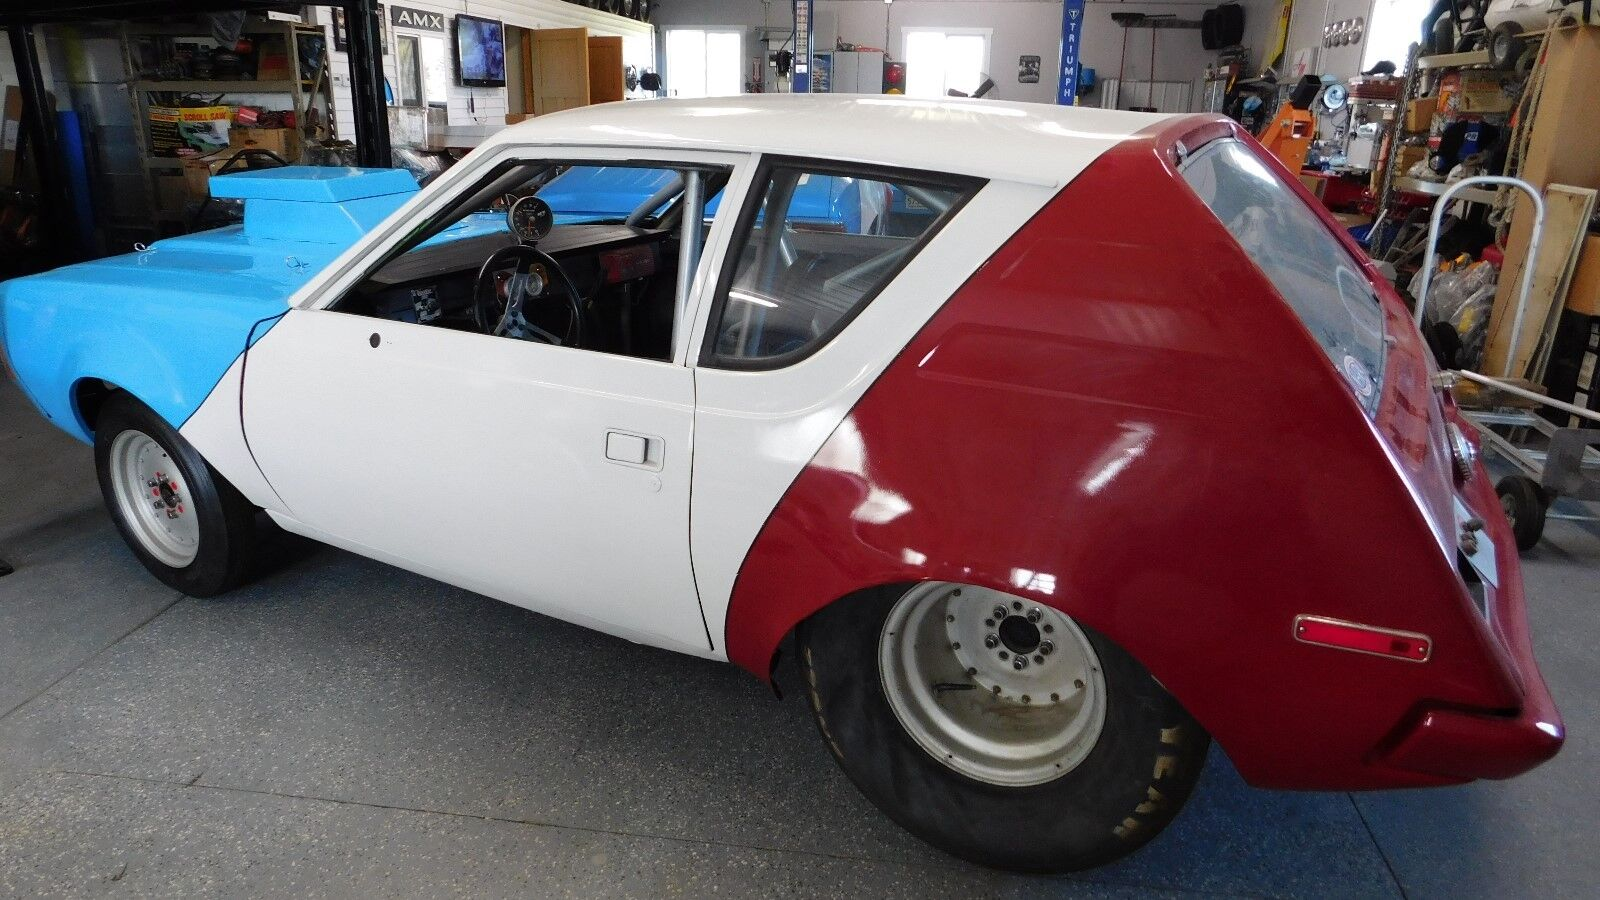 1974 AMC Gremlin  1974 AMC AMERICAN MOTORS GREMLIN DRAG CAR - ROLLER - SET UP FOR SBC/TURBO 350